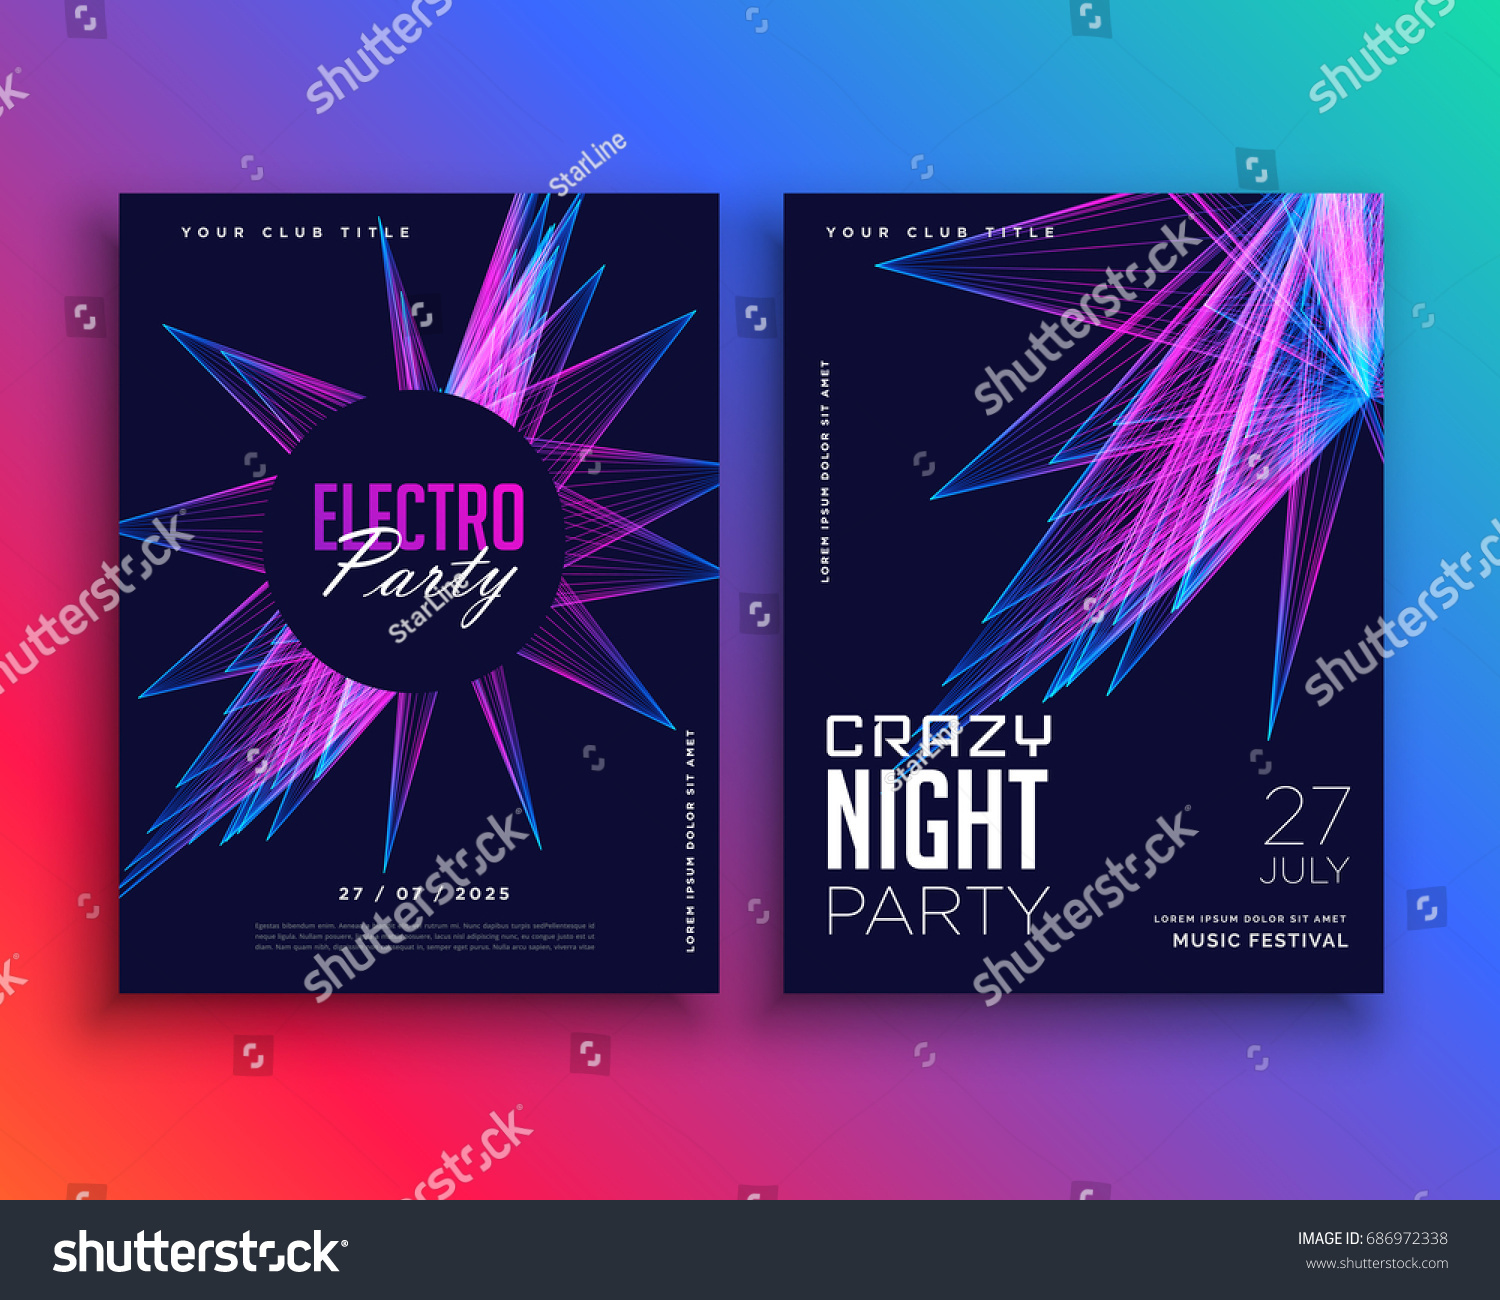 electro party music flyer template invitation stock vector 686972338 shutterstock. Black Bedroom Furniture Sets. Home Design Ideas